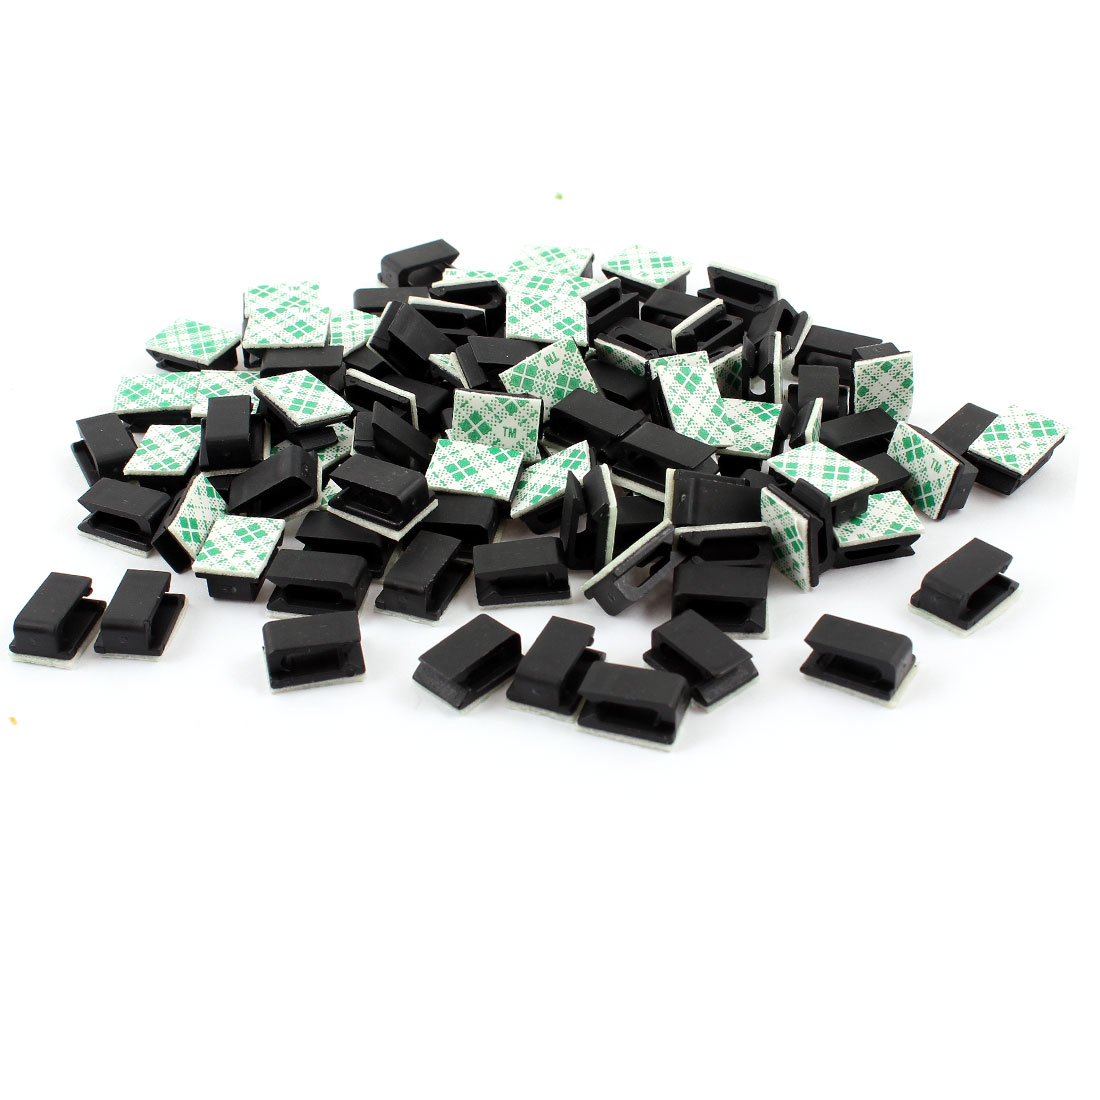 100PCS Black Hard Plastic Sticky Base Cable Tie Fixed Holder for 8mm Cable Wide